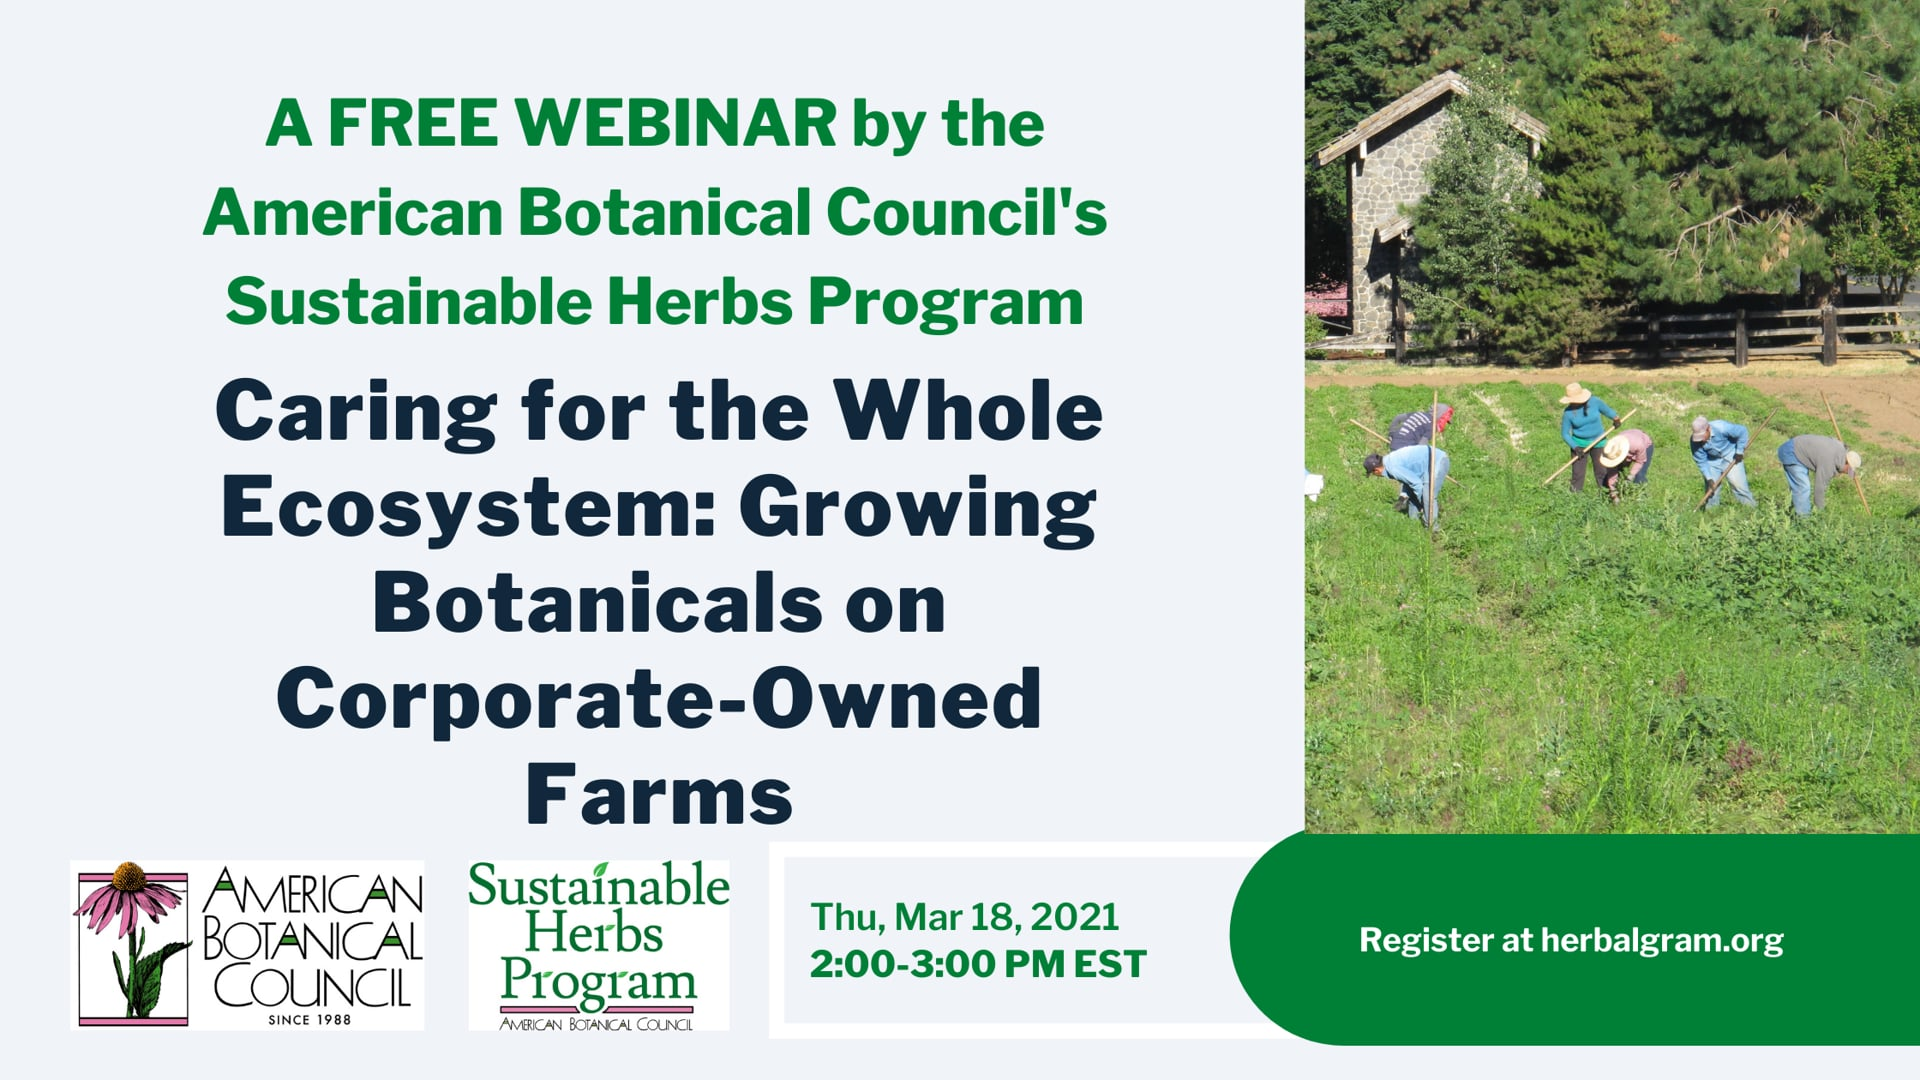 Regenerative Farming Practices on Corporate-Owned Herb Farms